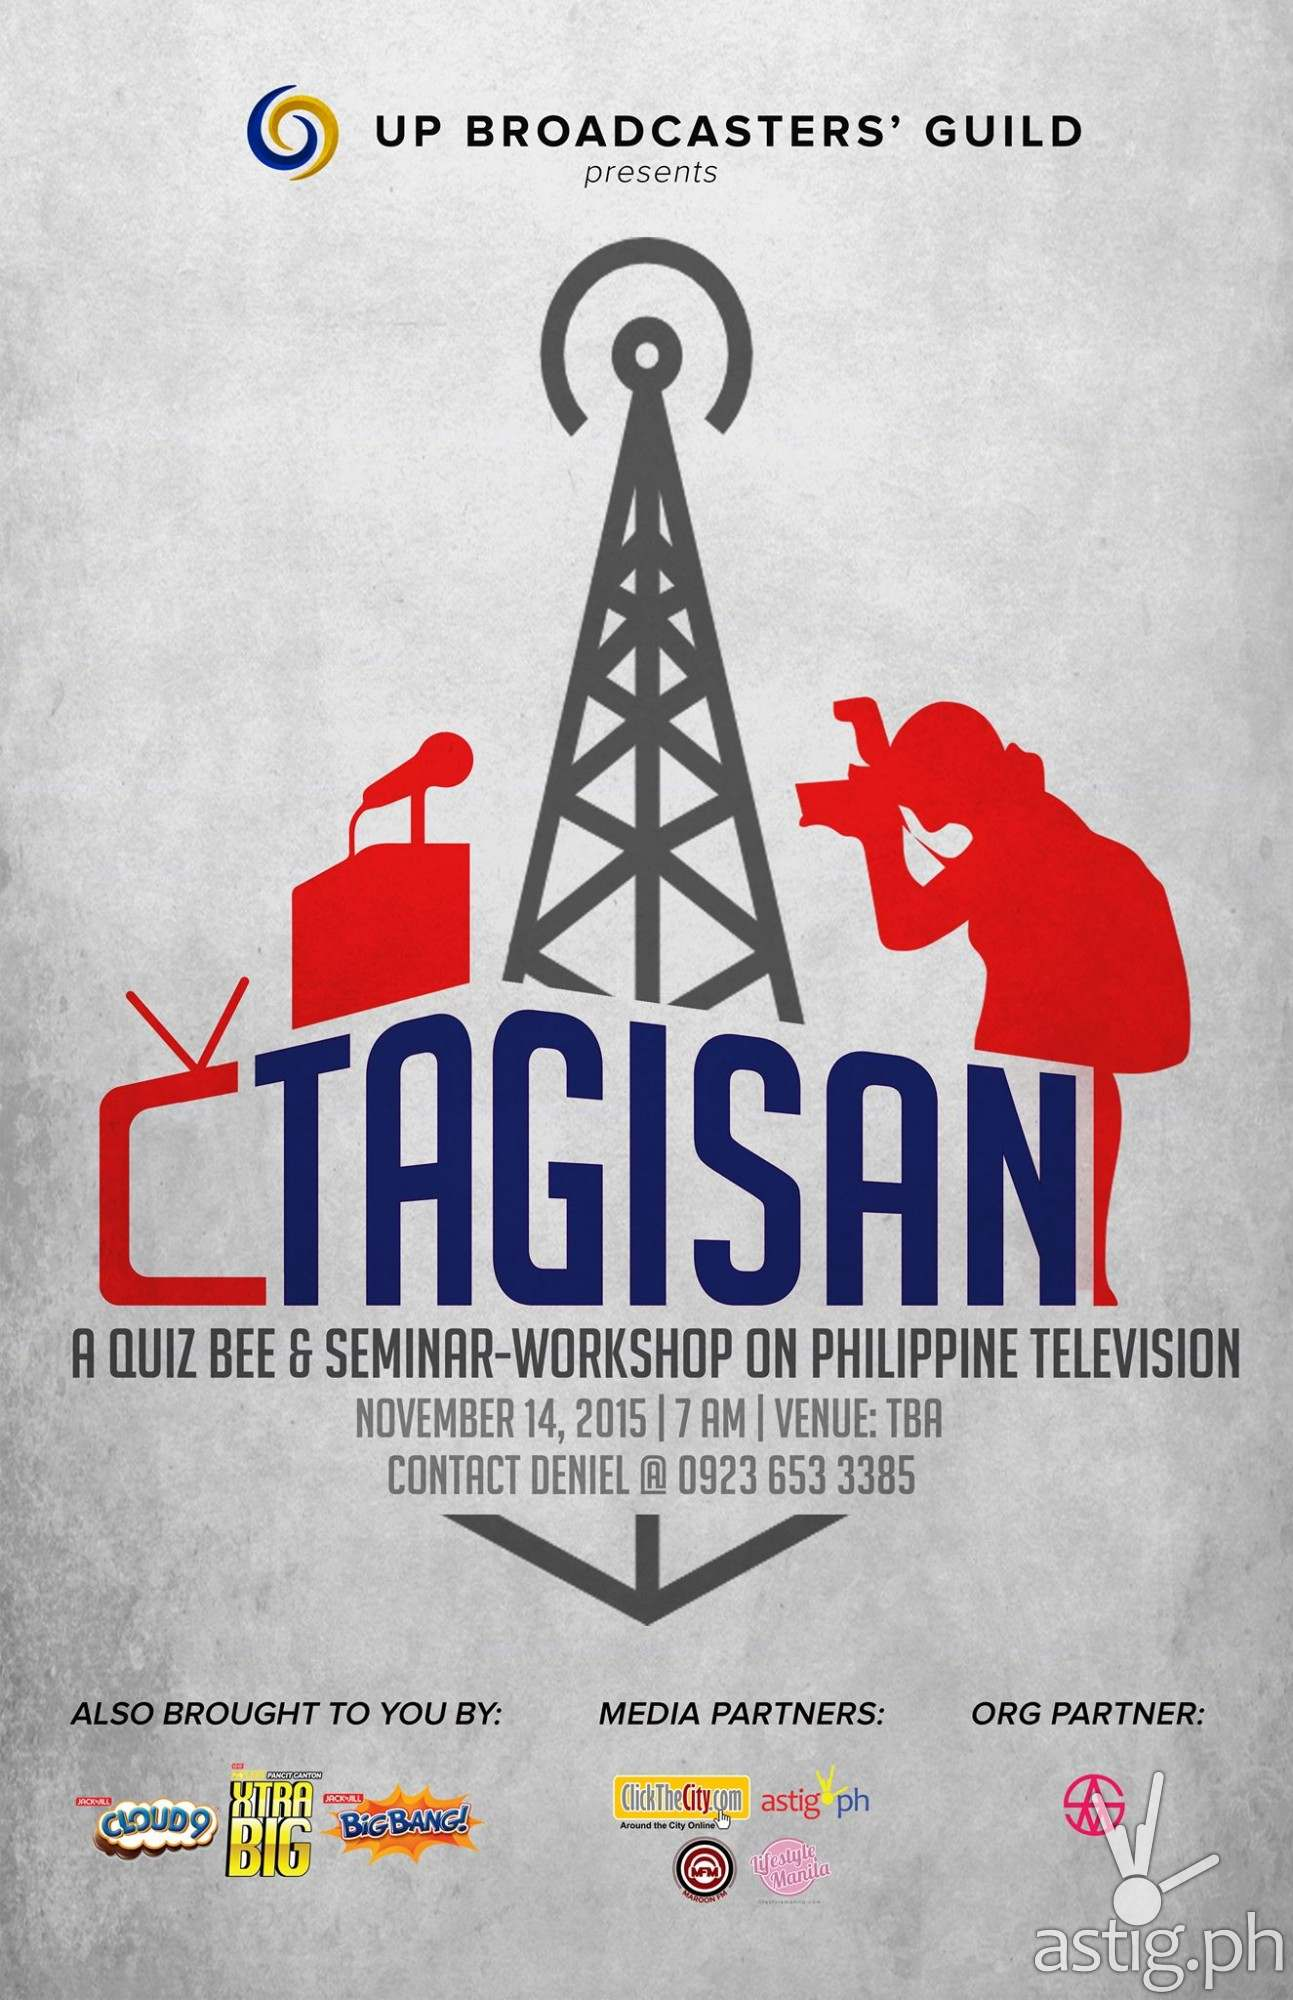 Tagisan 2015 UP Broadcasters' Guild